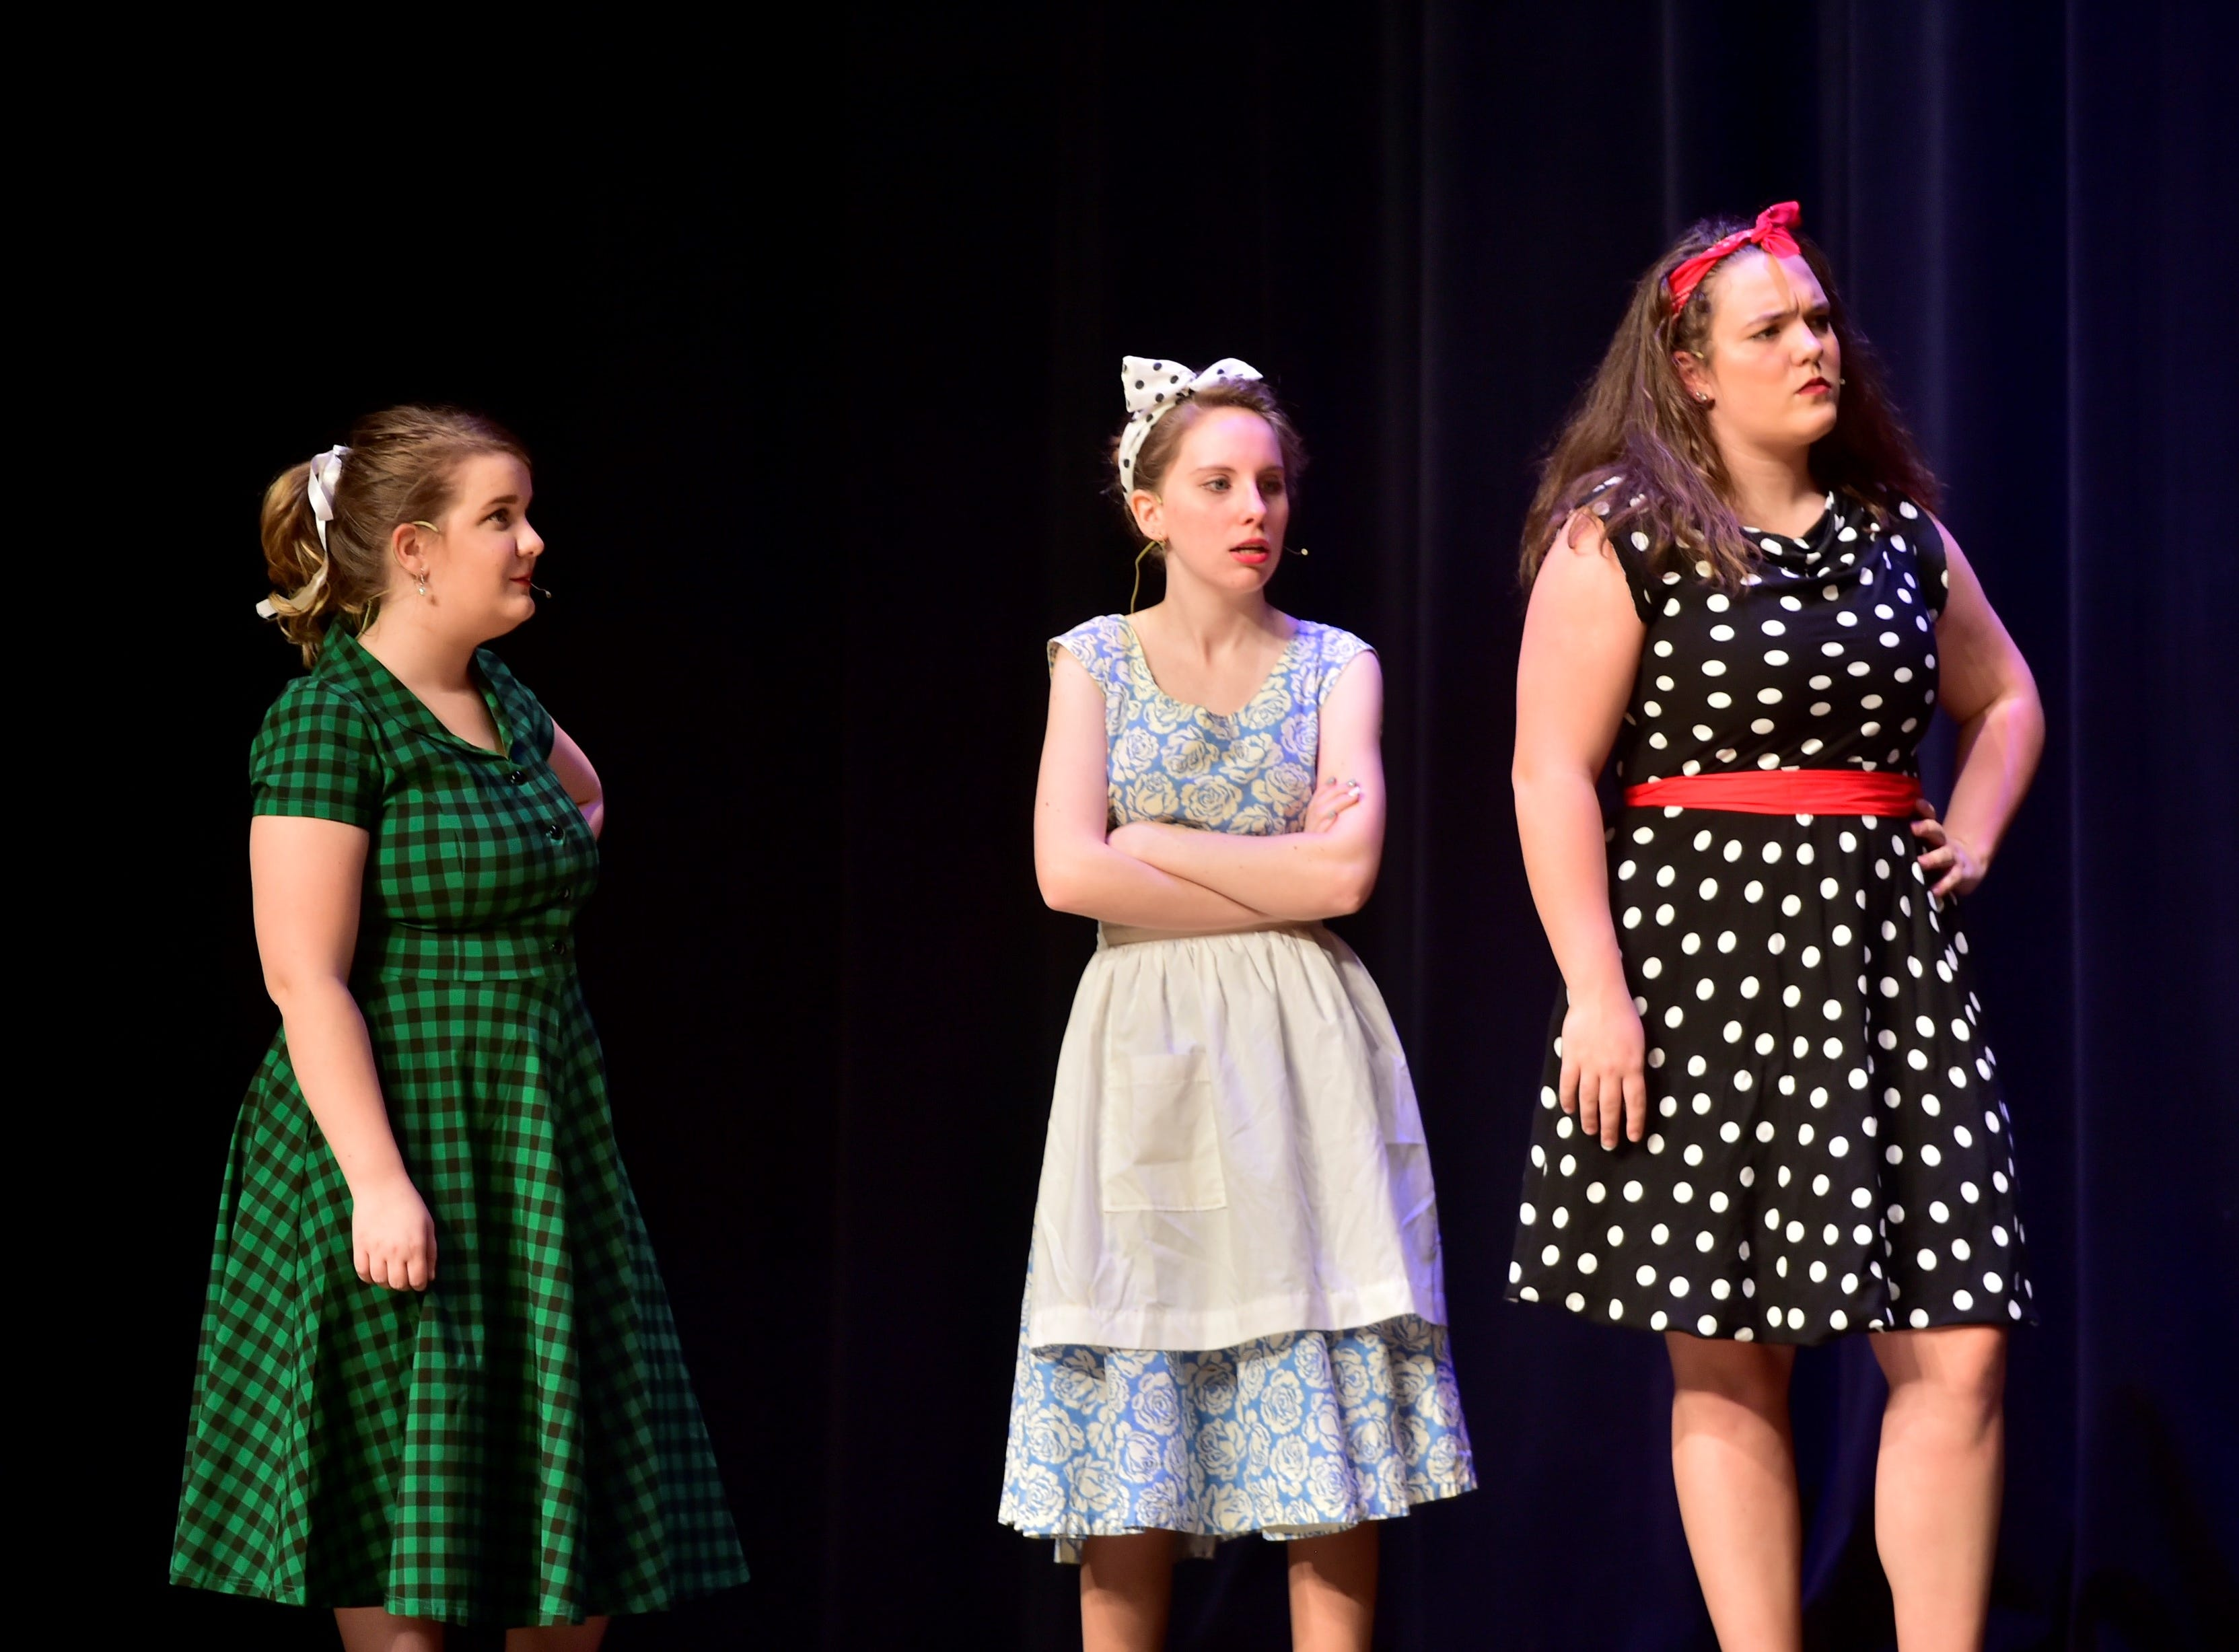 """From left, Kelsey Rook (Poopsie), Christina Bond (Mae) and Olivia Policicchio (Brenda) rehearse a scene from """"The Pajama Game,"""" on Sunday, March 10, 2019, at Waynesboro Area Senior High School. The musical, based on the 1953 novel, """"7 1/2 Cents"""" by Richard Bissell, tells the story of a pajama factory where workers are fighting for a raise of 7 1/2 cents. Showtimes for Waynesboro Area School District's All-School Production of """"The Pajama Game"""" are 7 p.m. Friday and Saturday, March 15 and 16, and 2 p.m. Sunday, March 17 in the high school auditorium. For choose-your-seat tickets, $10 for adults and $6 for children under 12, go to https://washsmusic.ticketleap.com/the-pajama-game/. General admission tickets will also be sold at the door."""